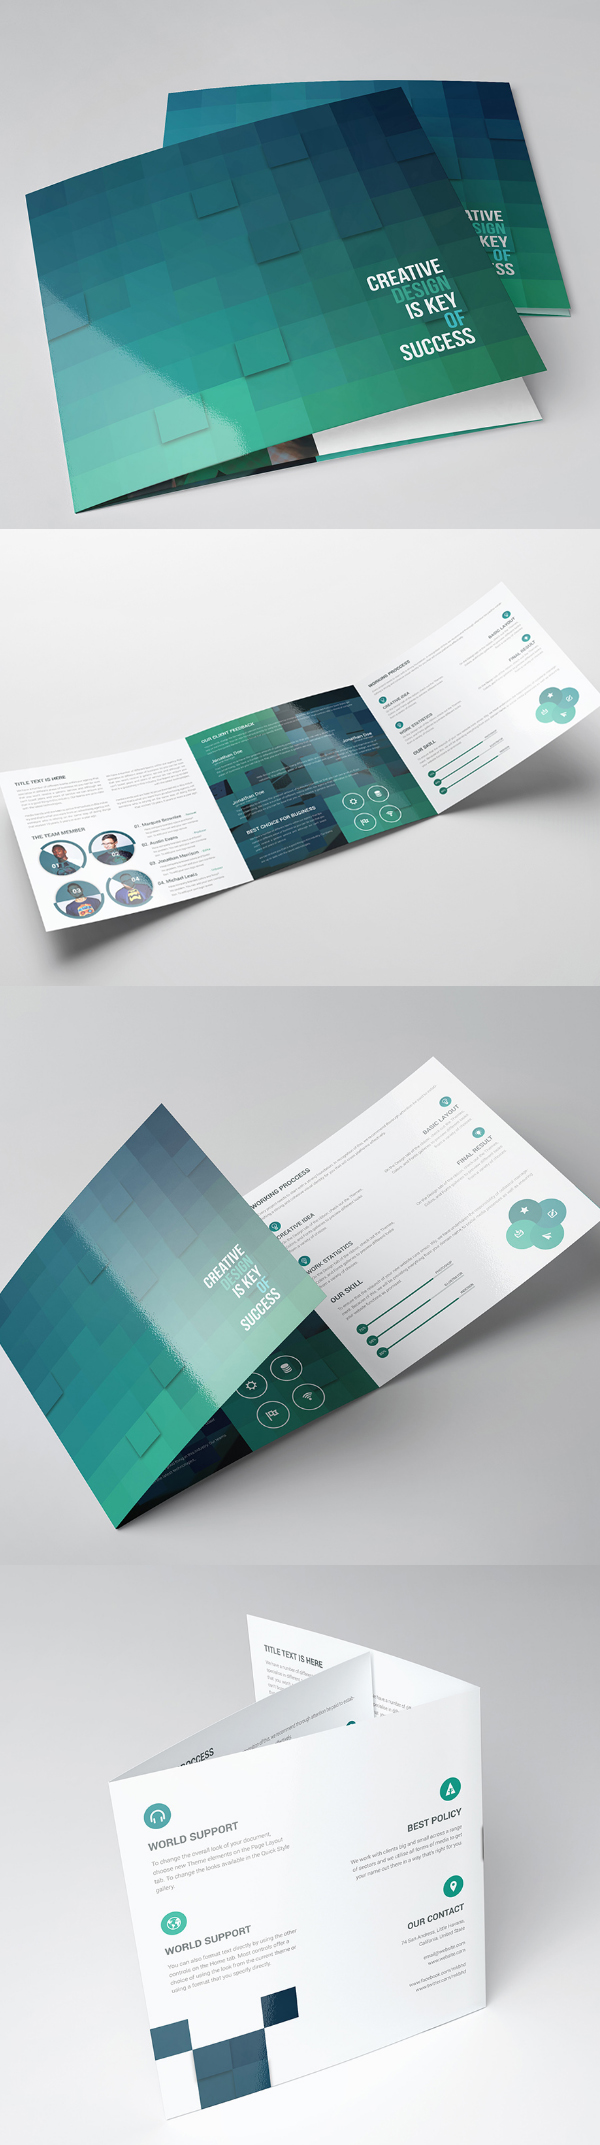 graphic design brochure templates new catalog brochure design templates design graphic